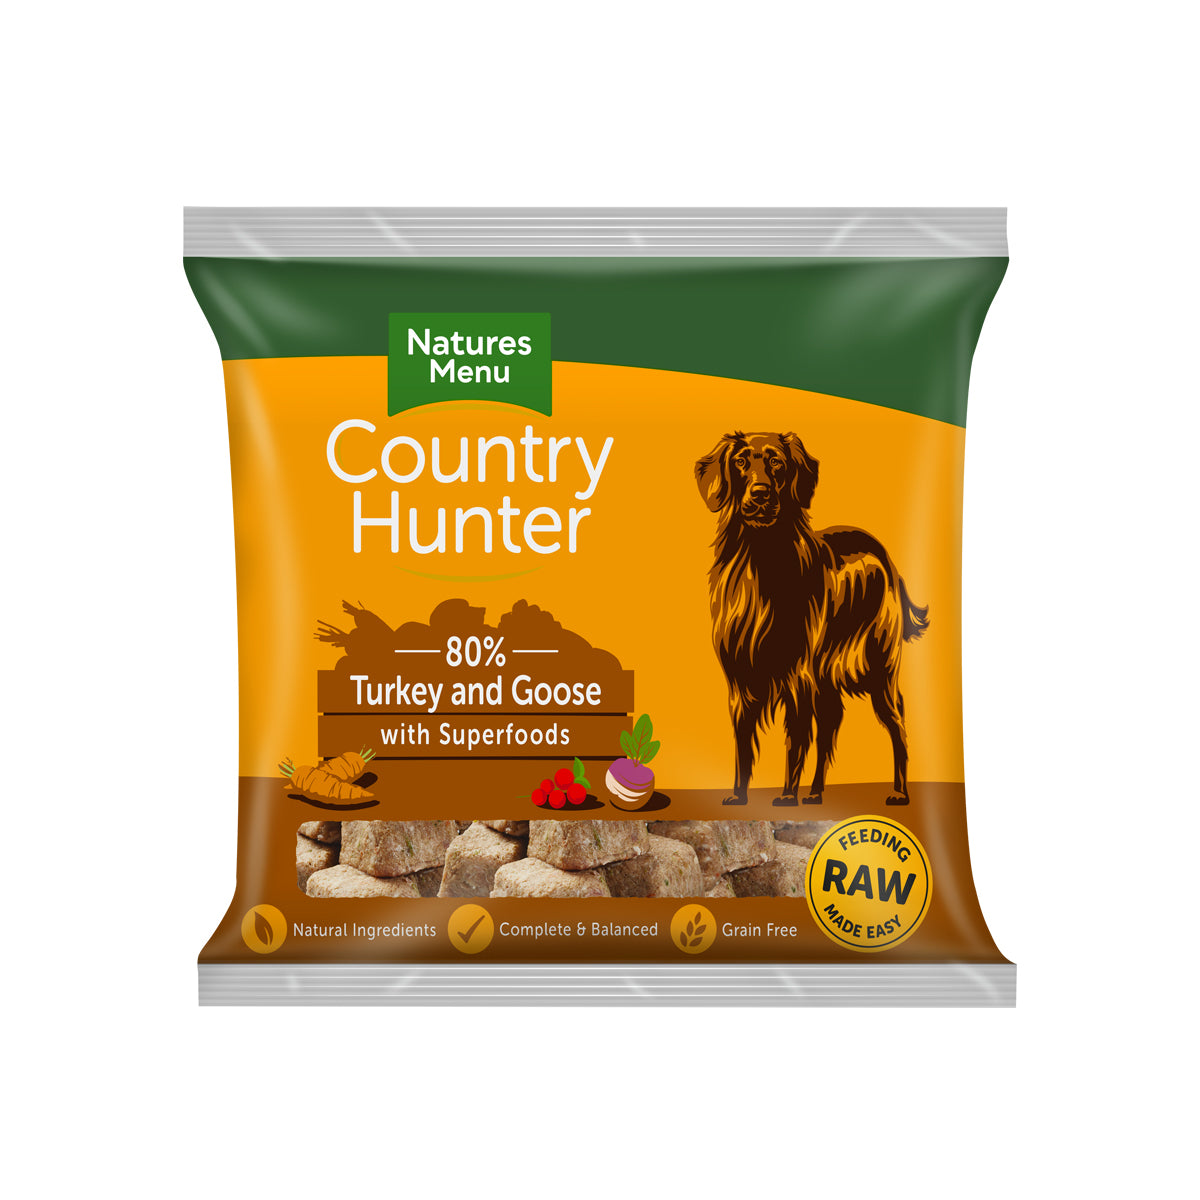 Natures Menu Country Hunter Raw Nuggets Turkey And Goose For Dogs 1kg